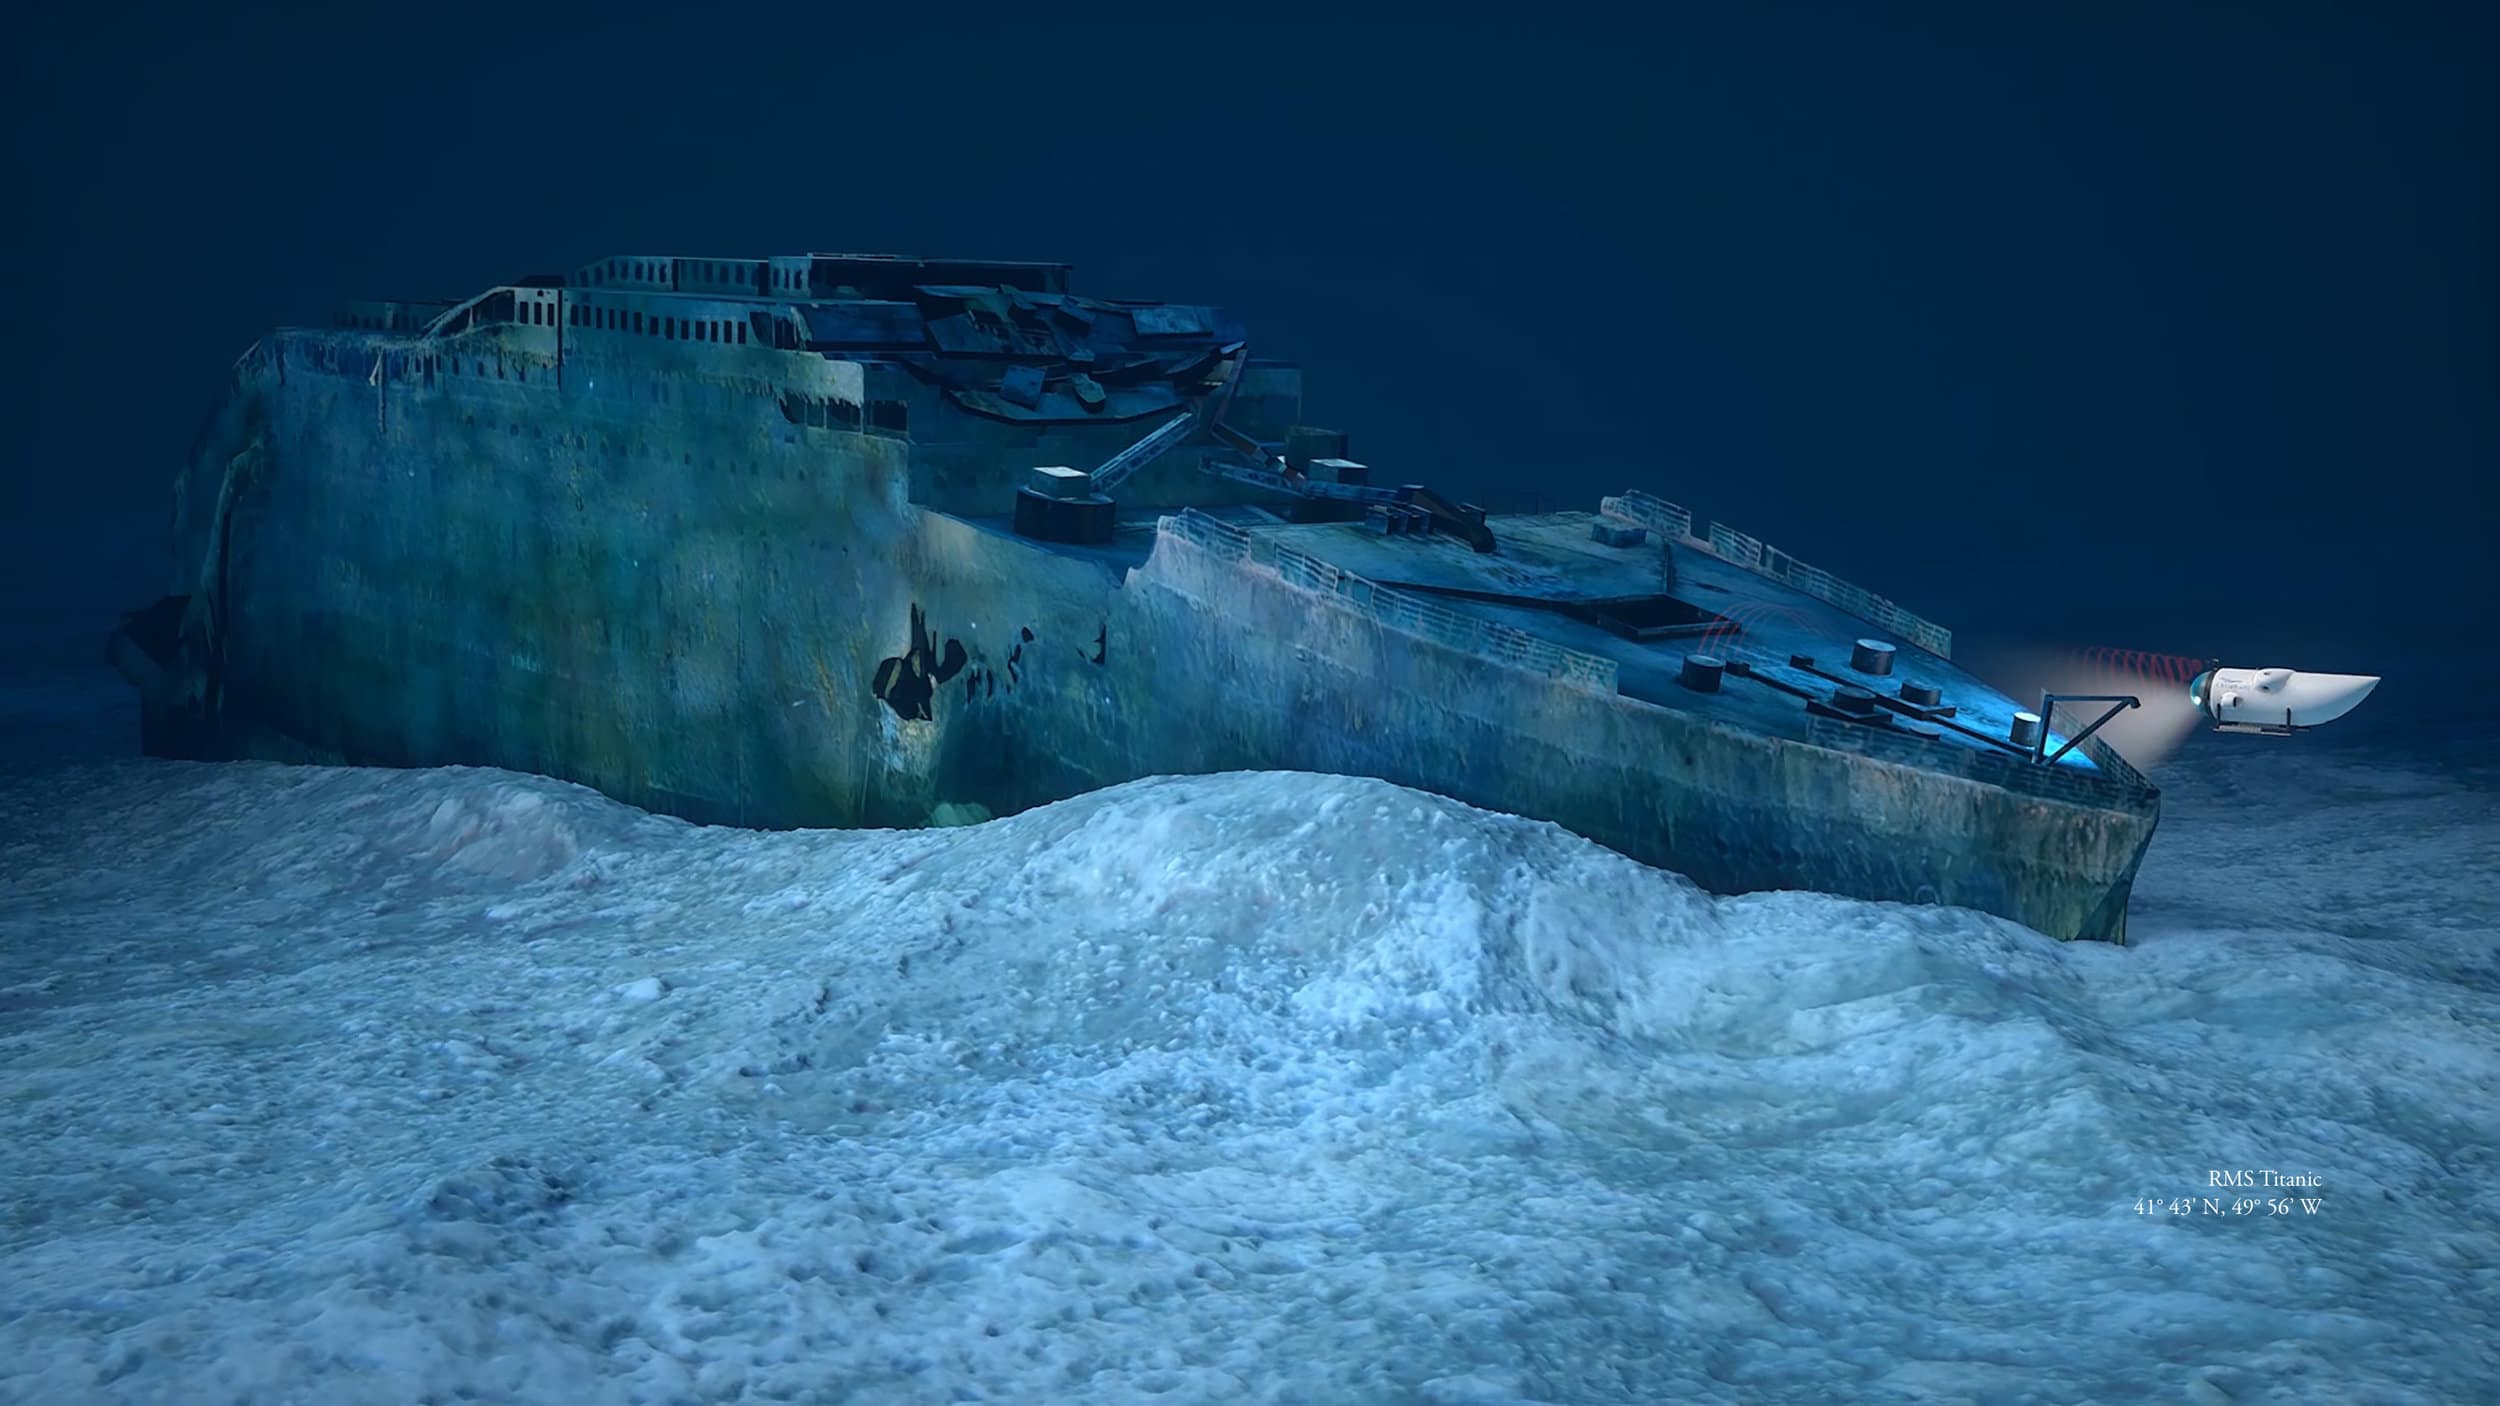 Tour Company Offering Dive Trip To The Titanic For US$105,129